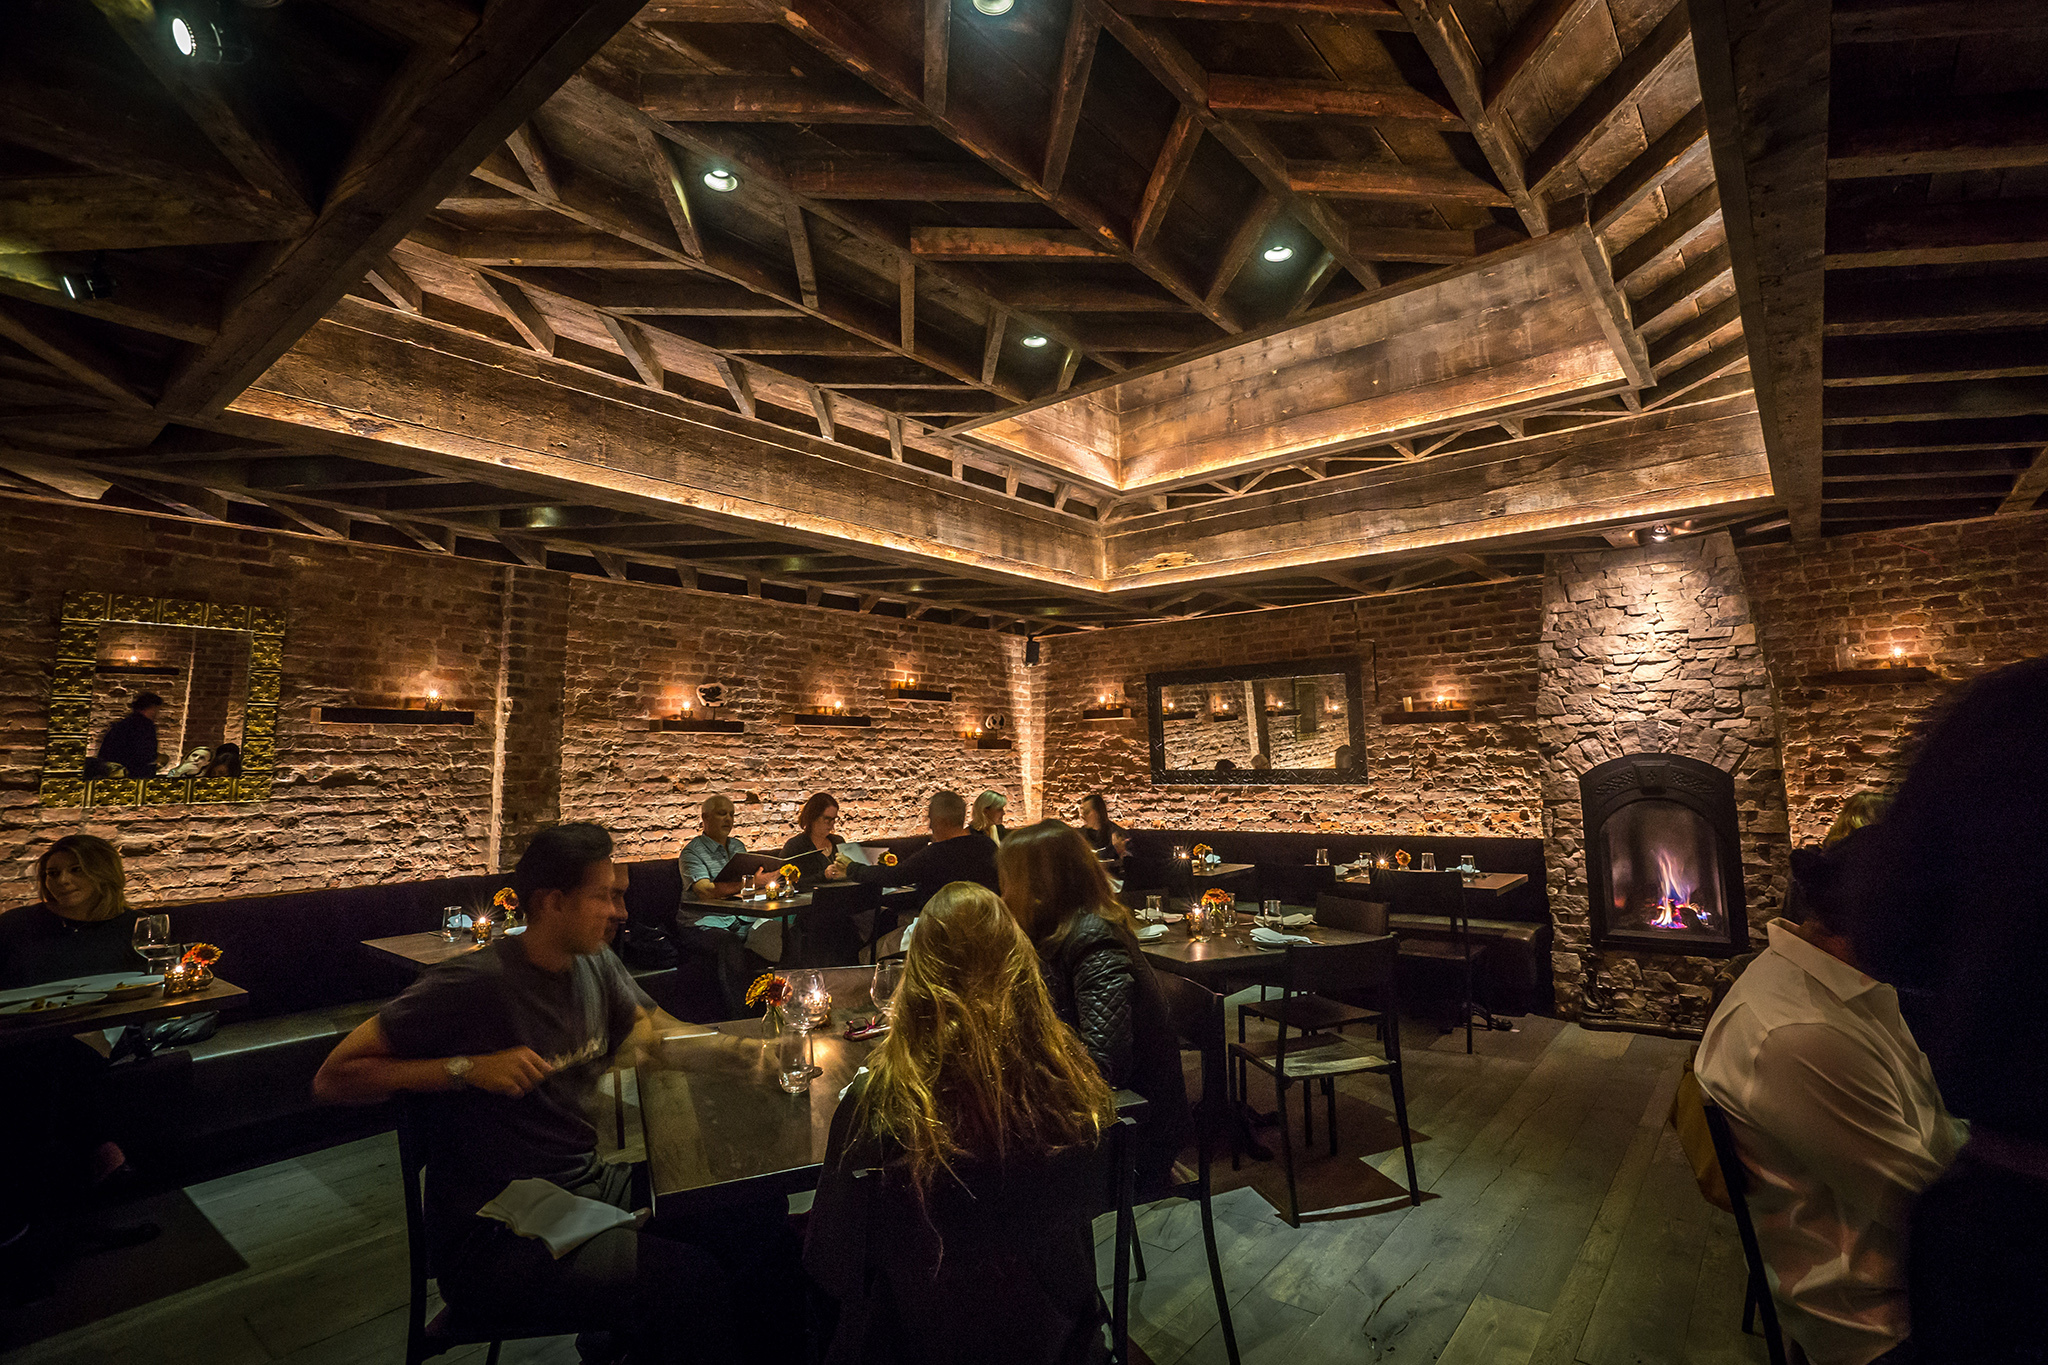 Best looking Restaurants And Bars In NYC slideshow